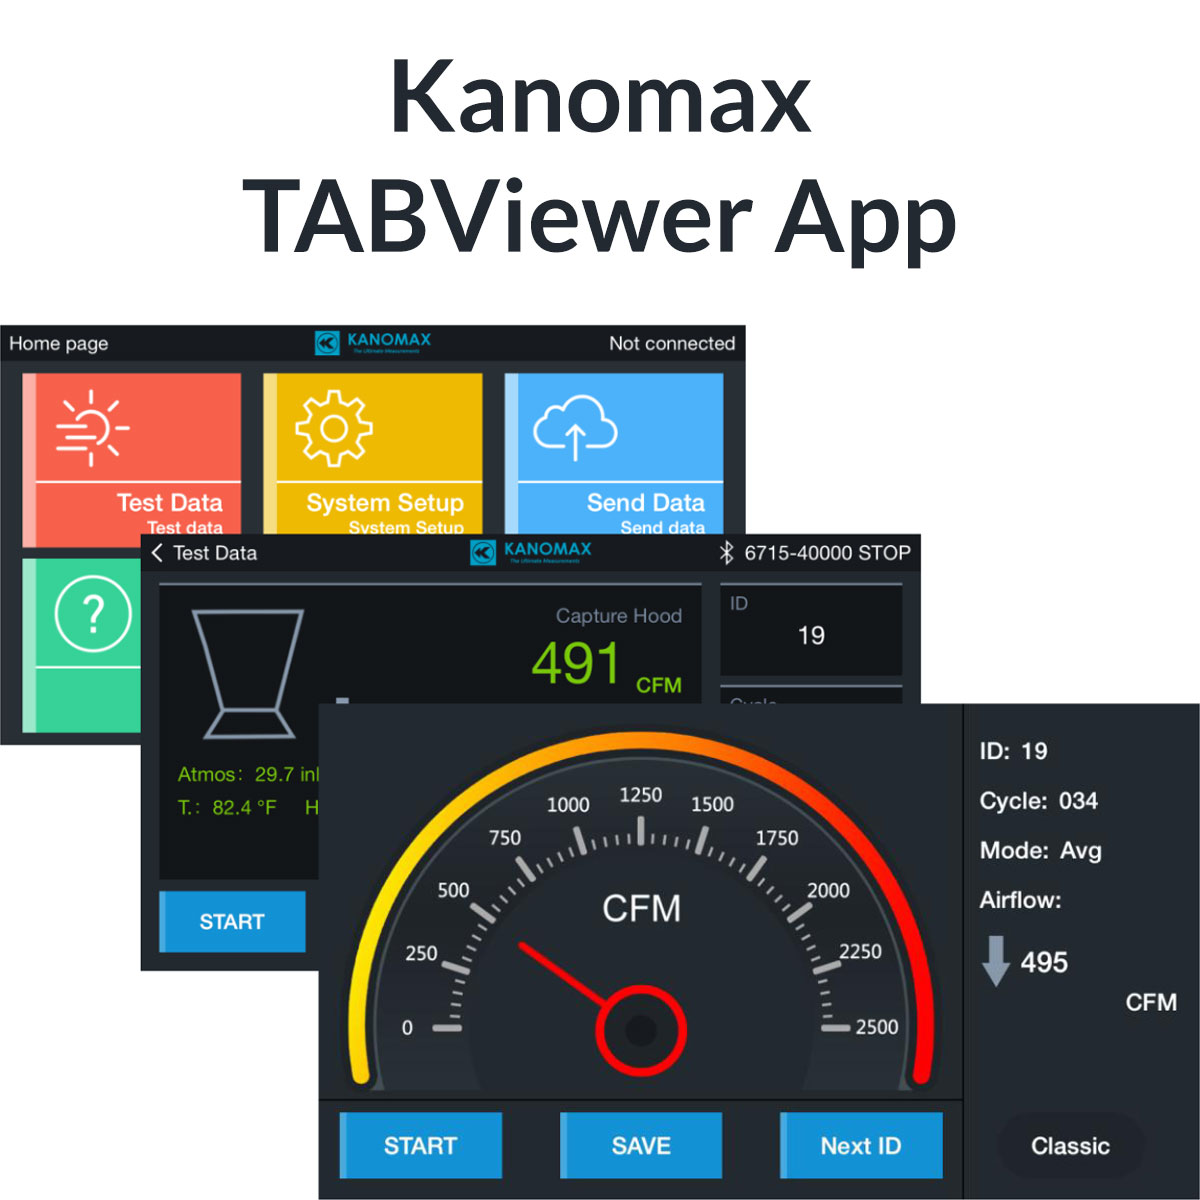 Kanomax TABViewer App Image